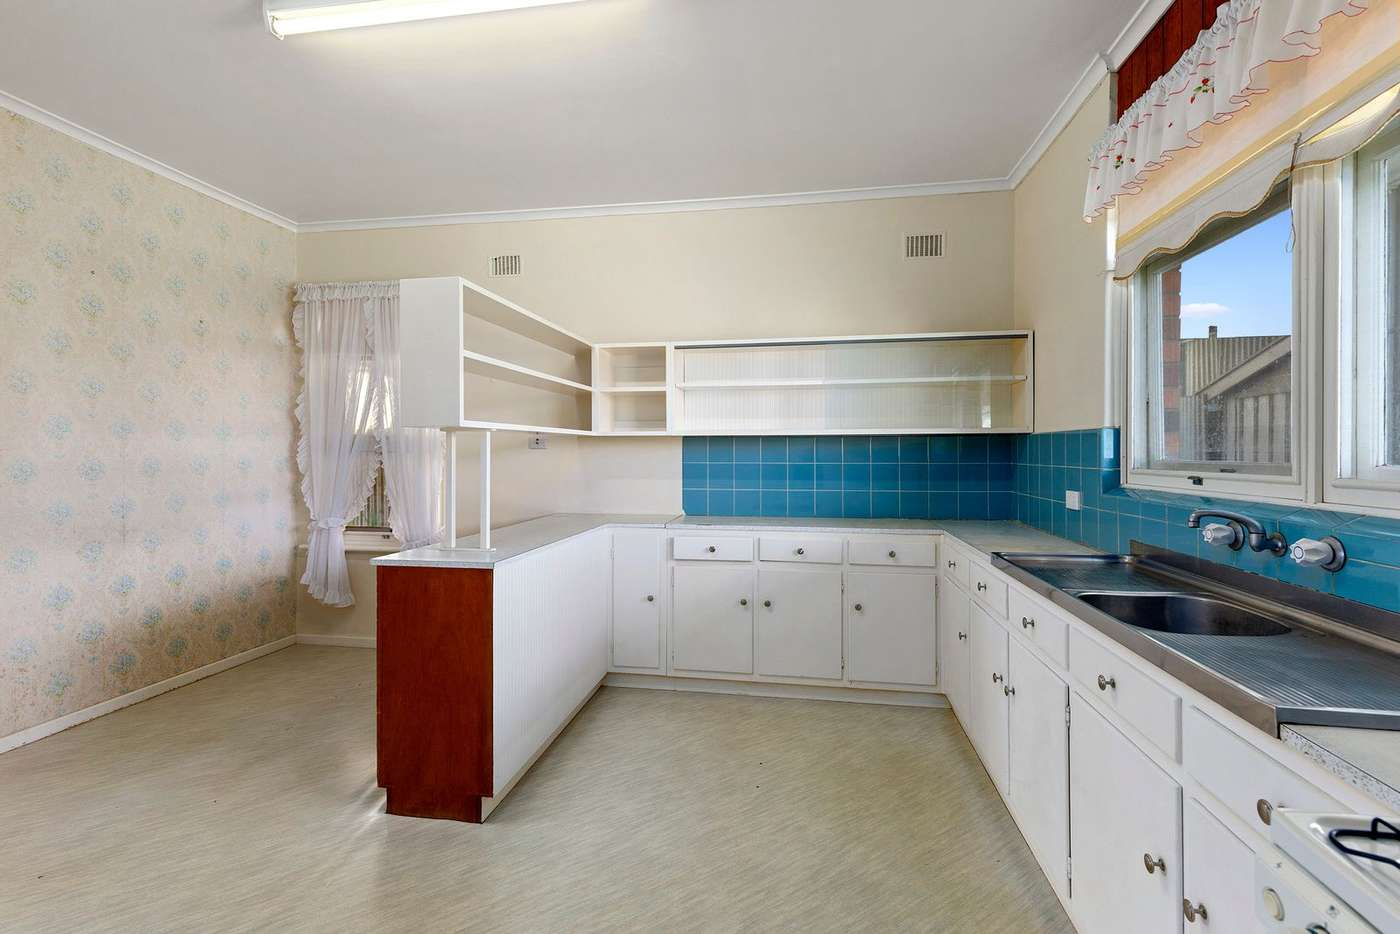 Seventh view of Homely house listing, 20 Waterhouse Road, South Plympton SA 5038